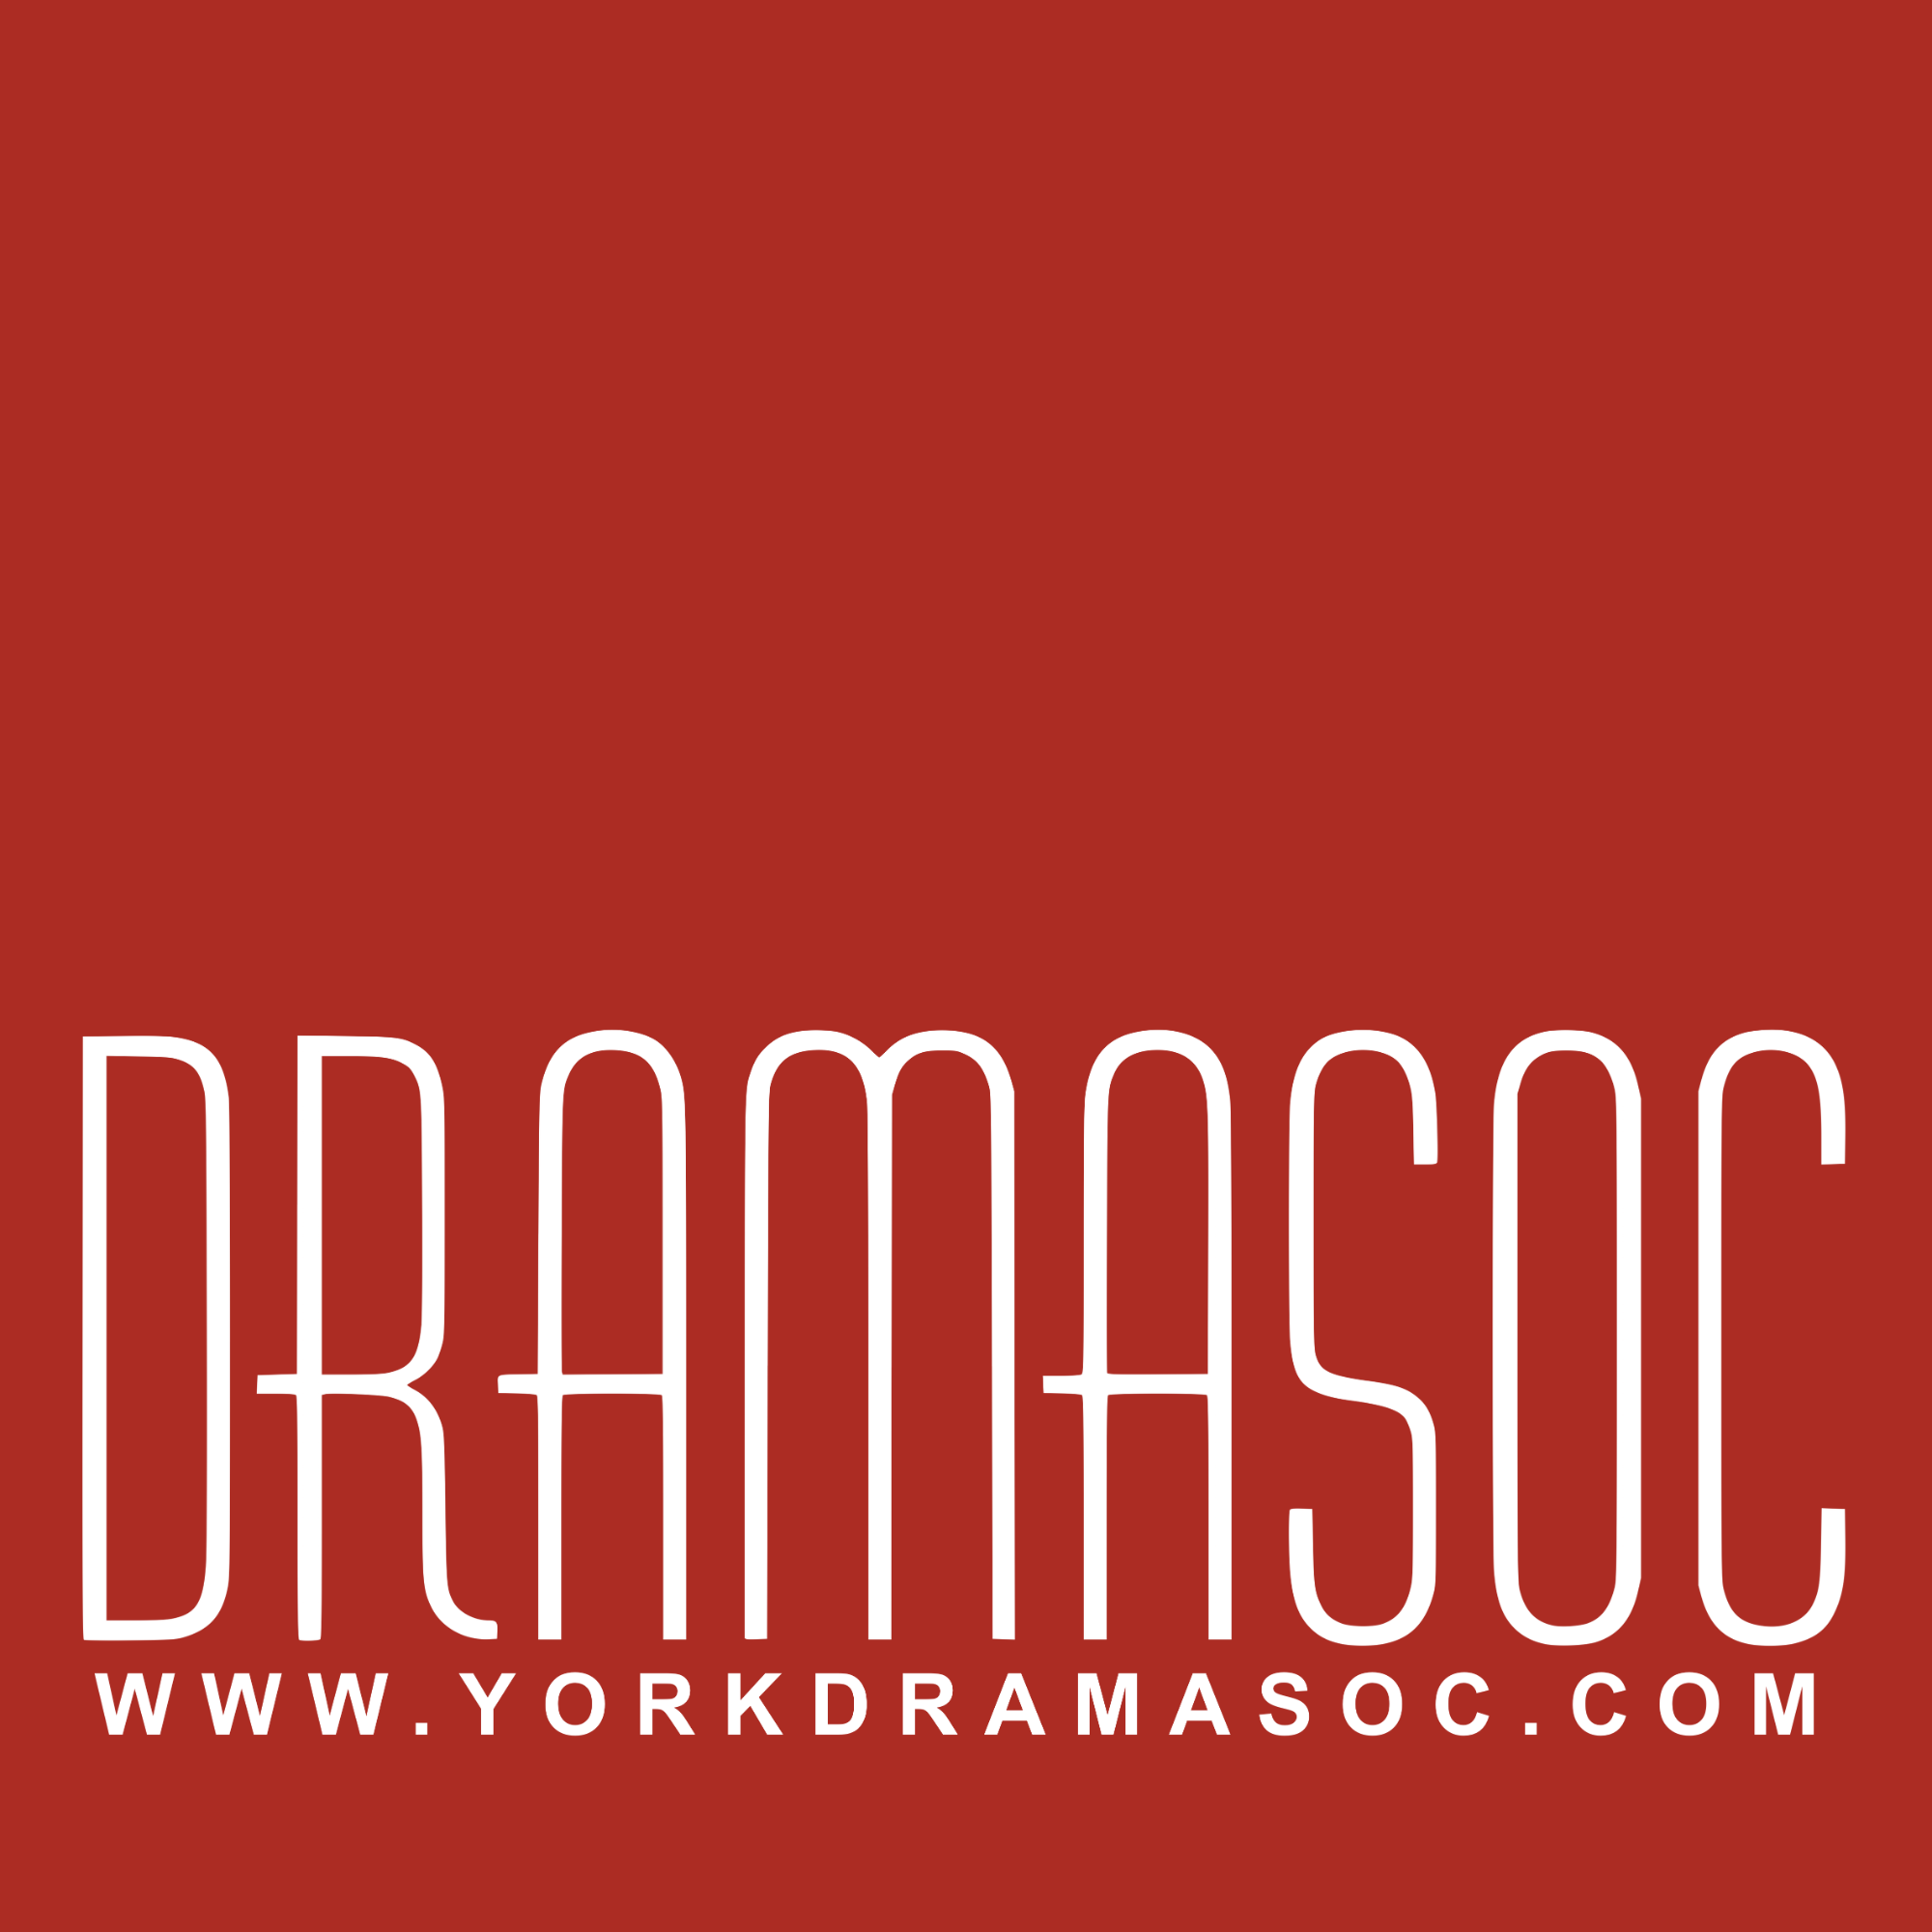 University of York Drama Society